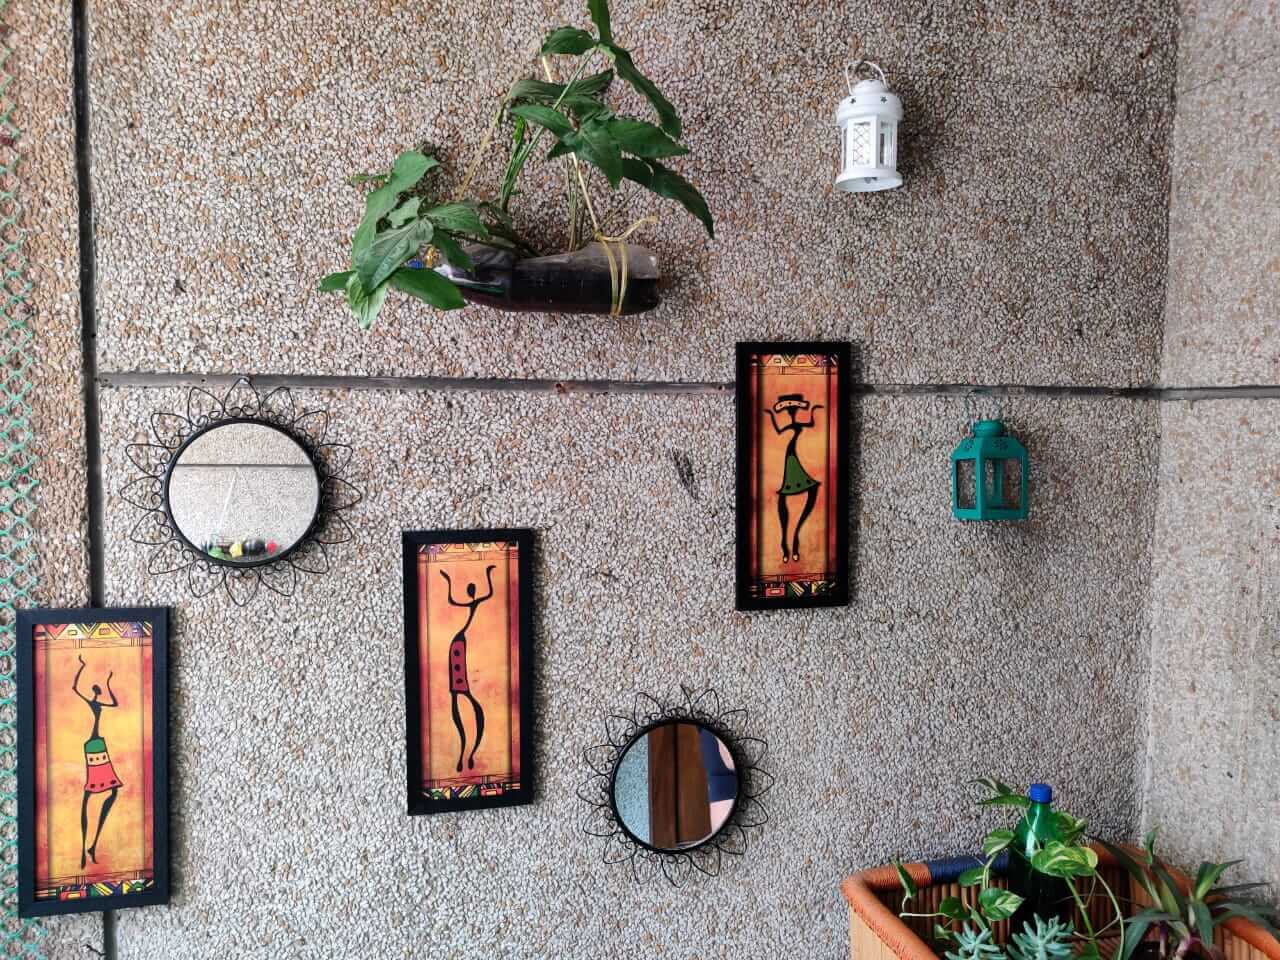 Balcony Garden - Wall decor